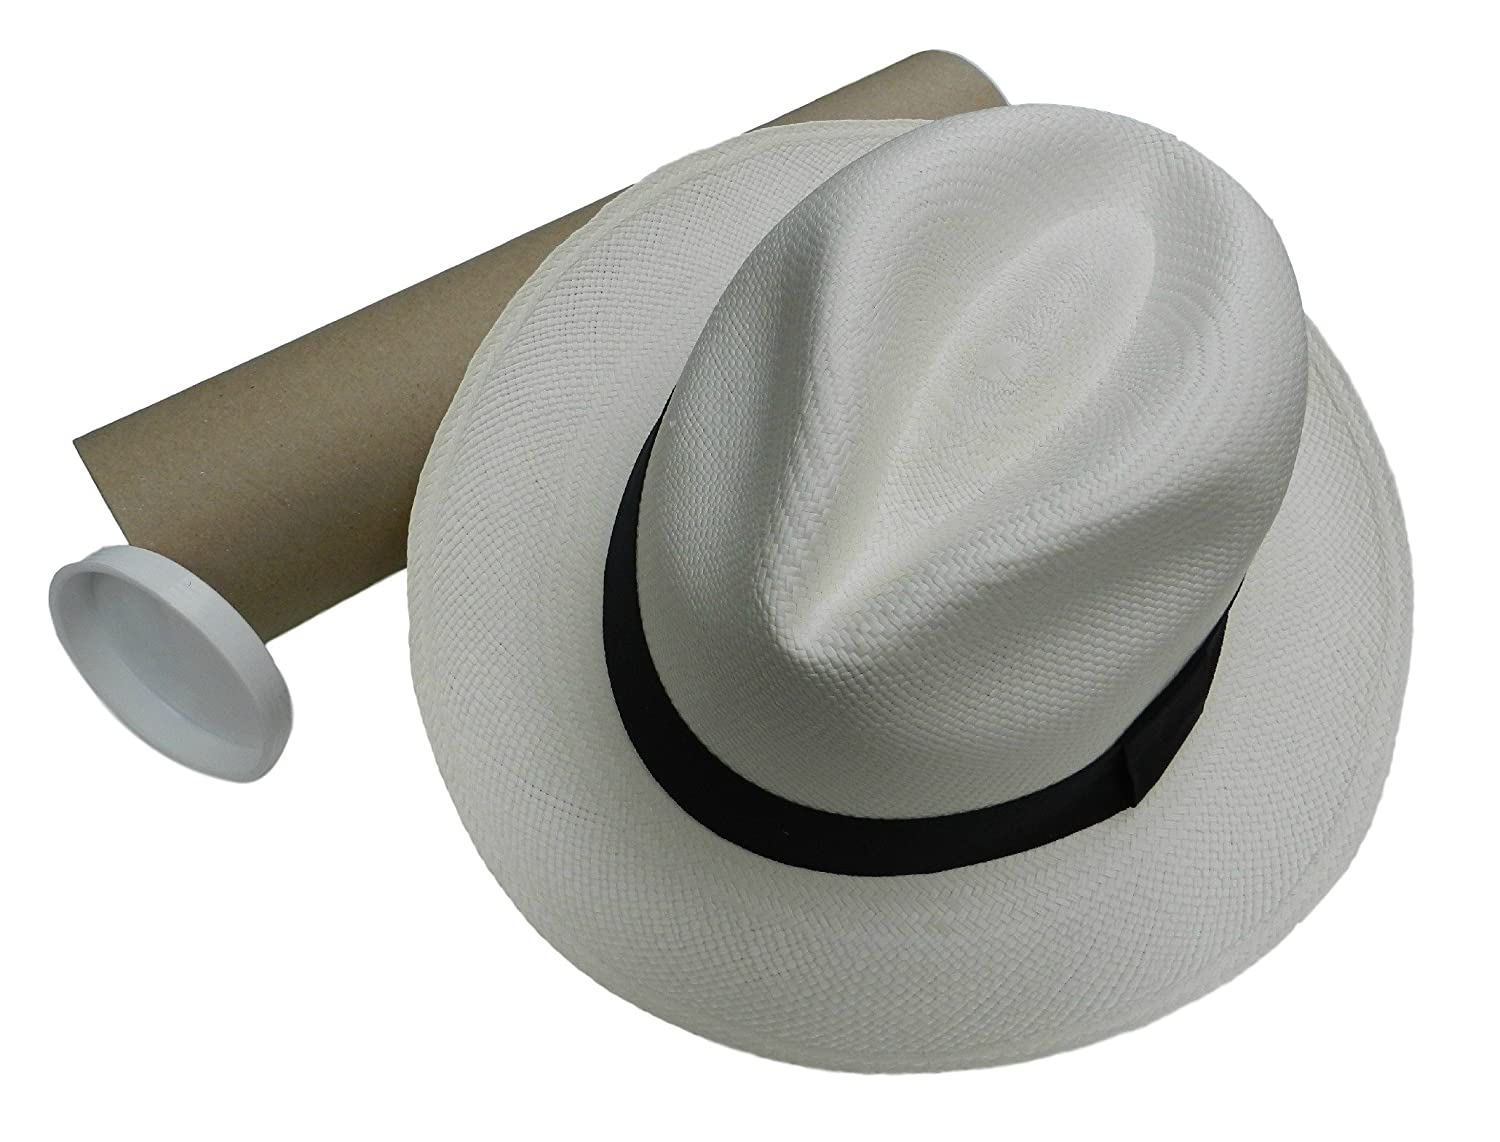 Equal Earth New Genuine Panama Hat Rolling Folding Quality with Travel Tube - White